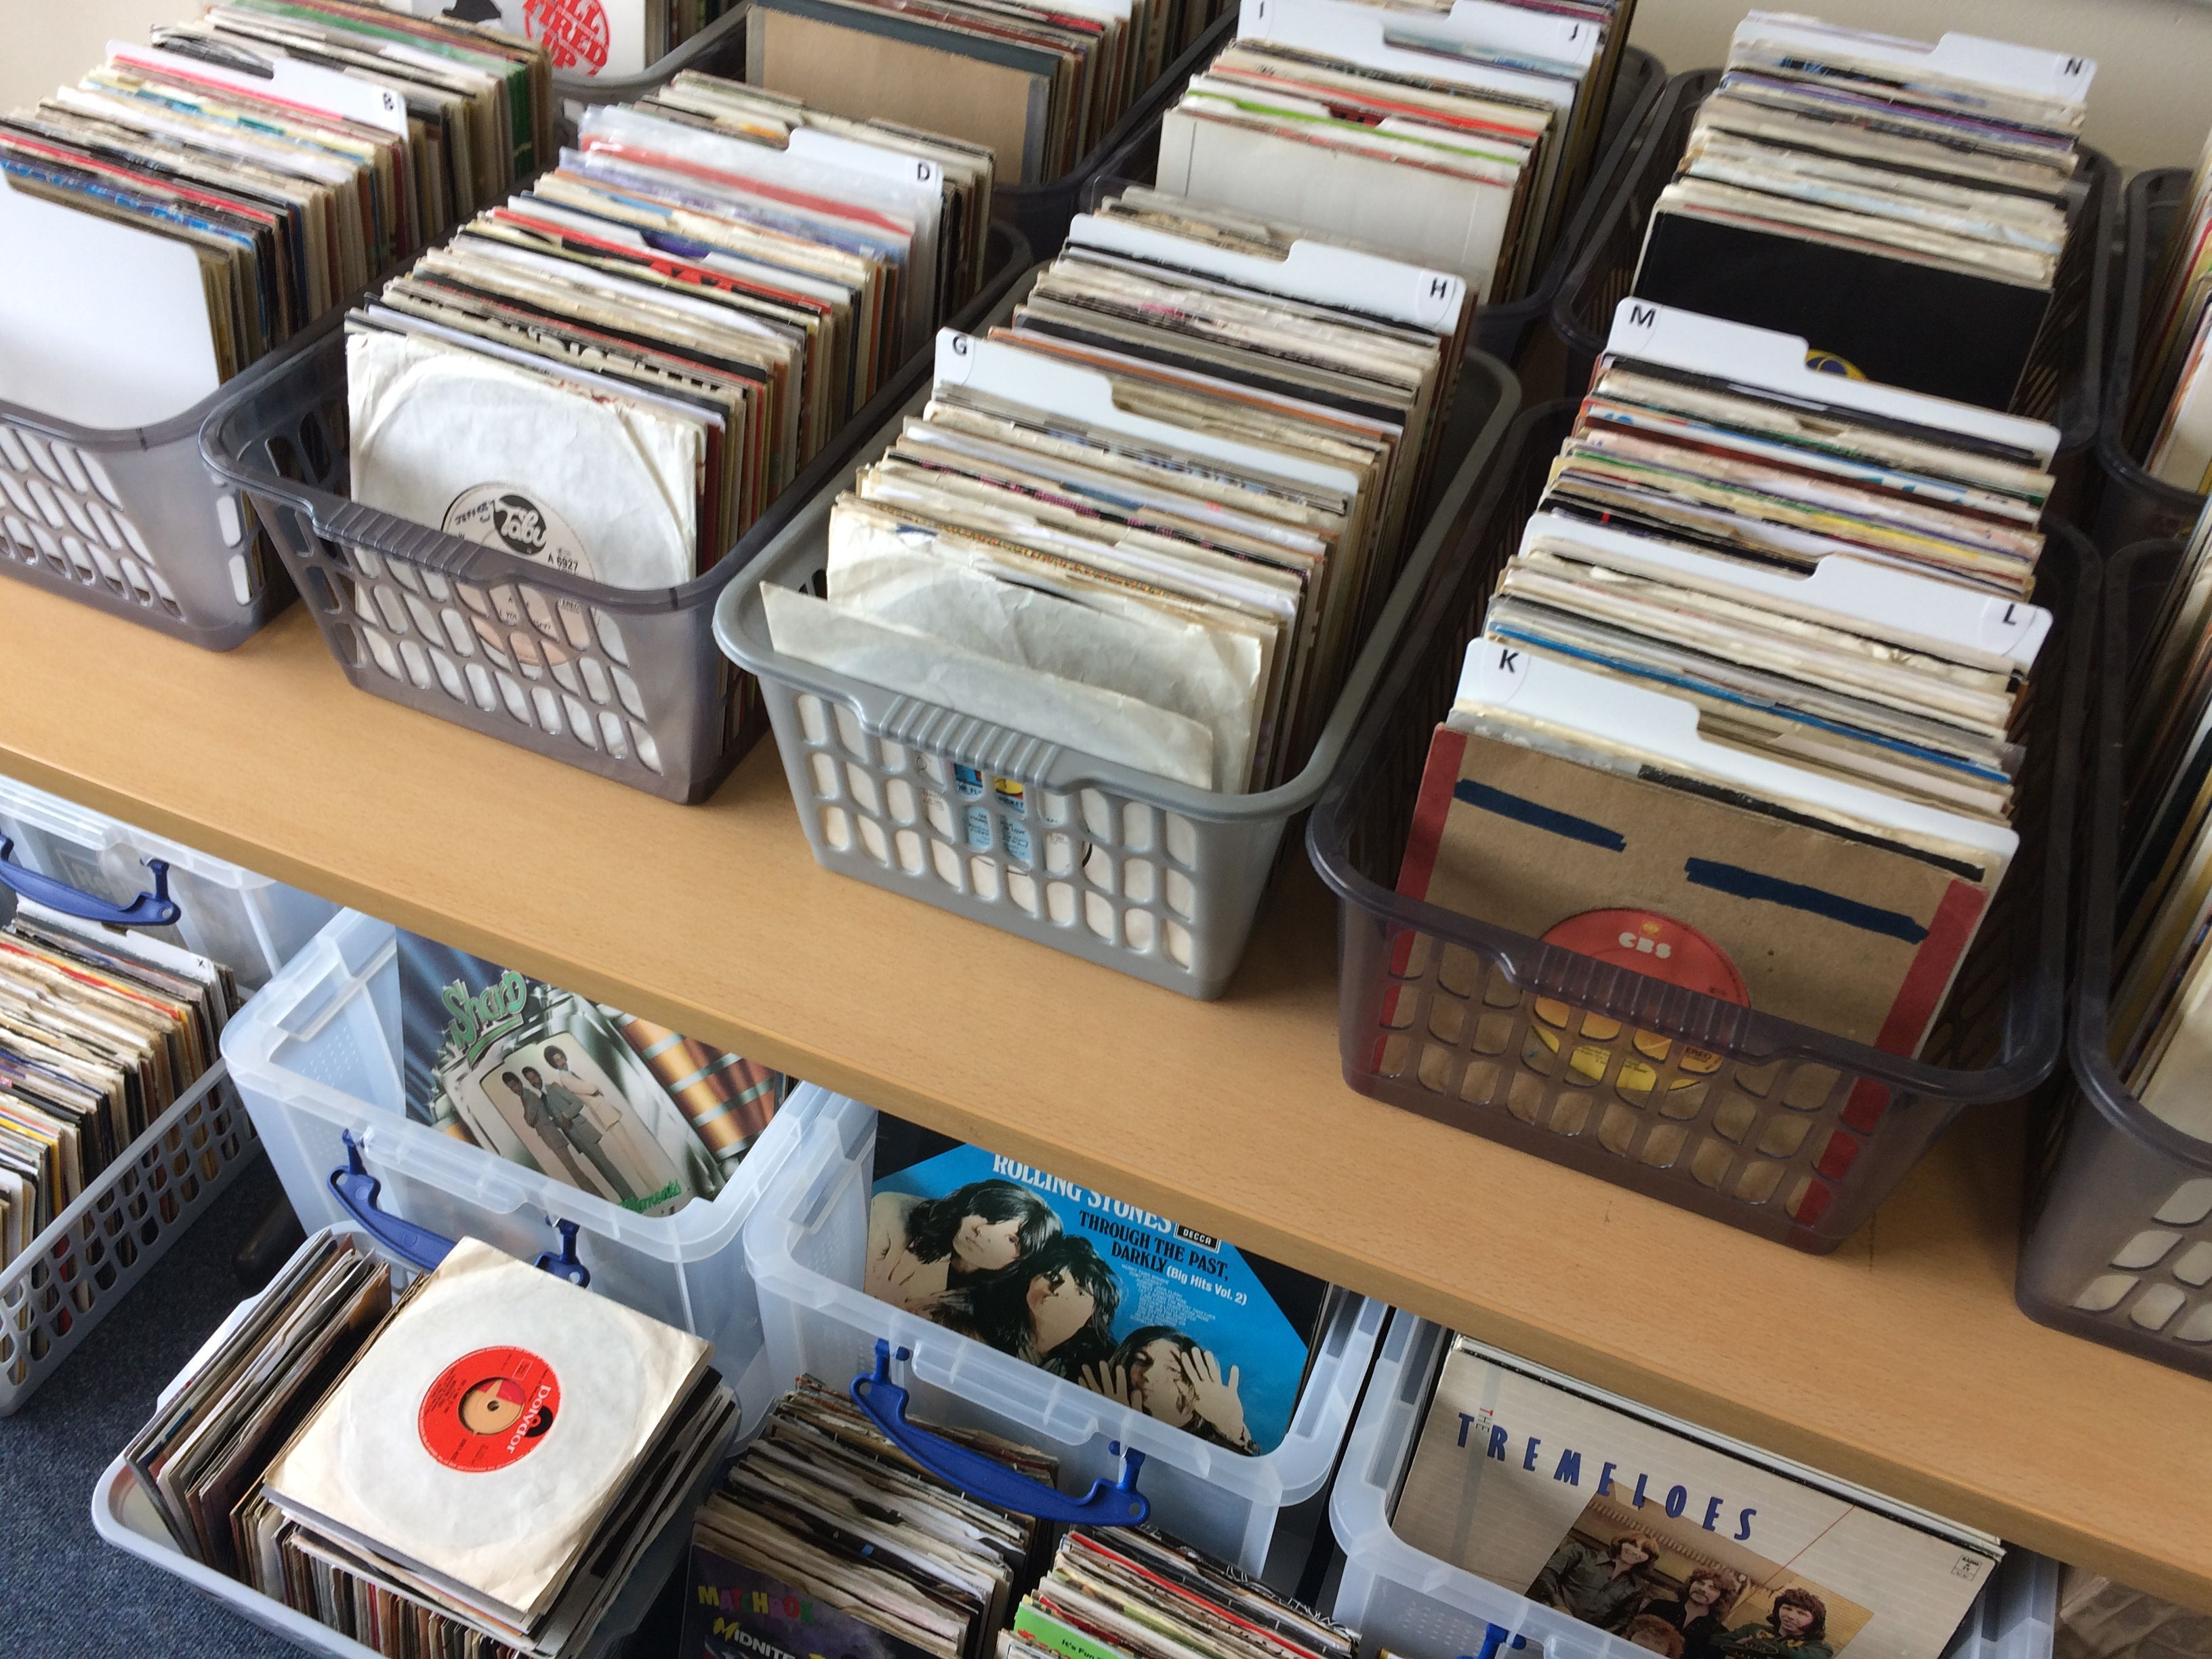 Collecting vinyl records by mail